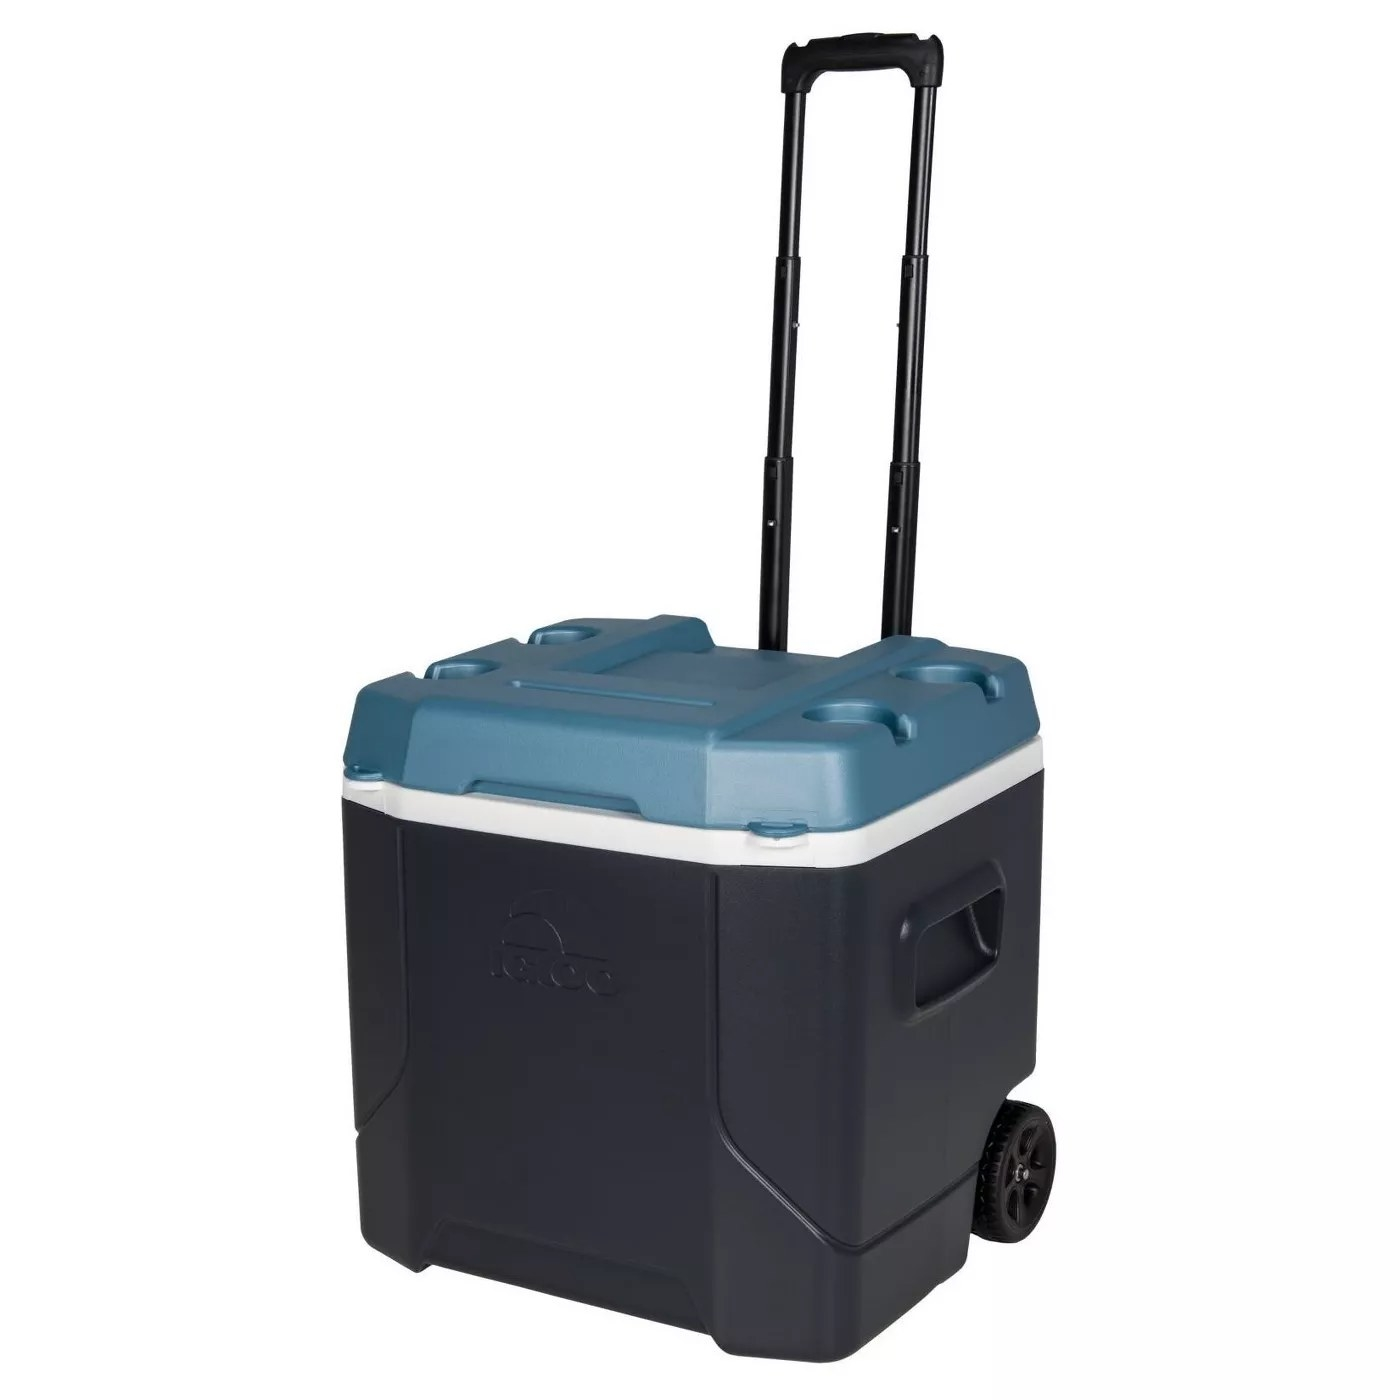 The rolling cooler